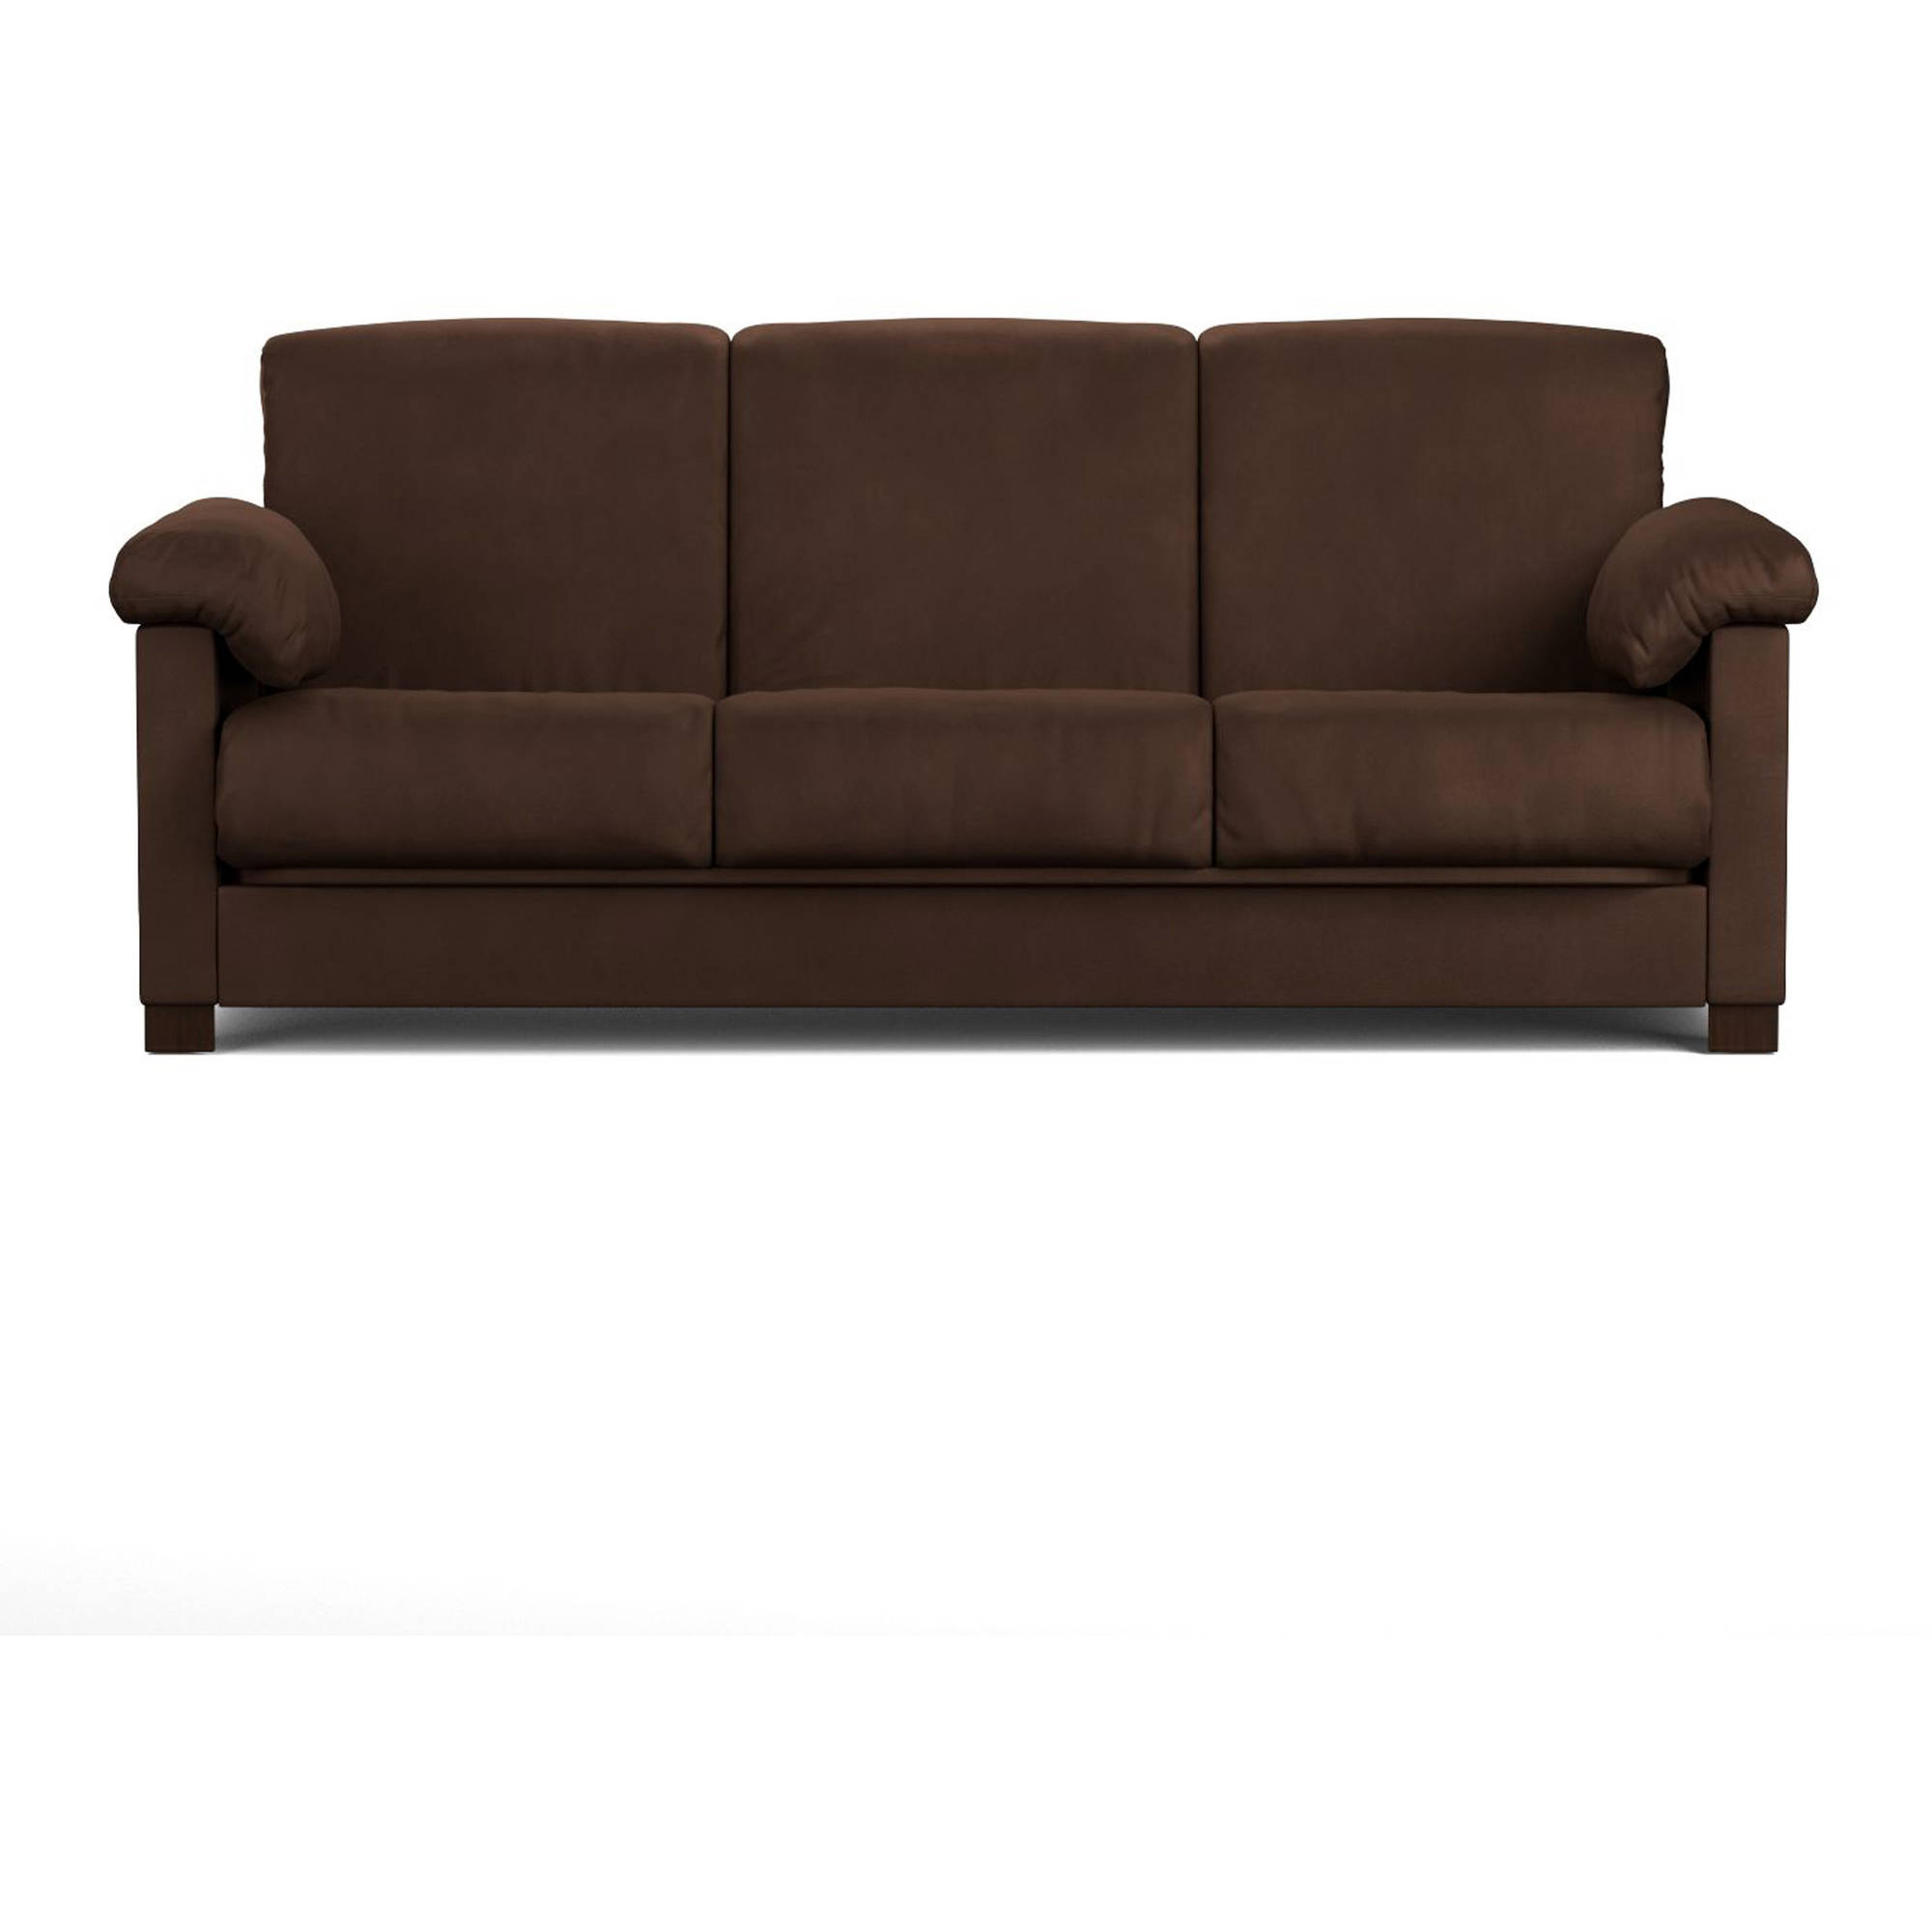 sofa fabric white chaise gray bed full corner convertible of leather microfiber sofas chesterfield size sectional